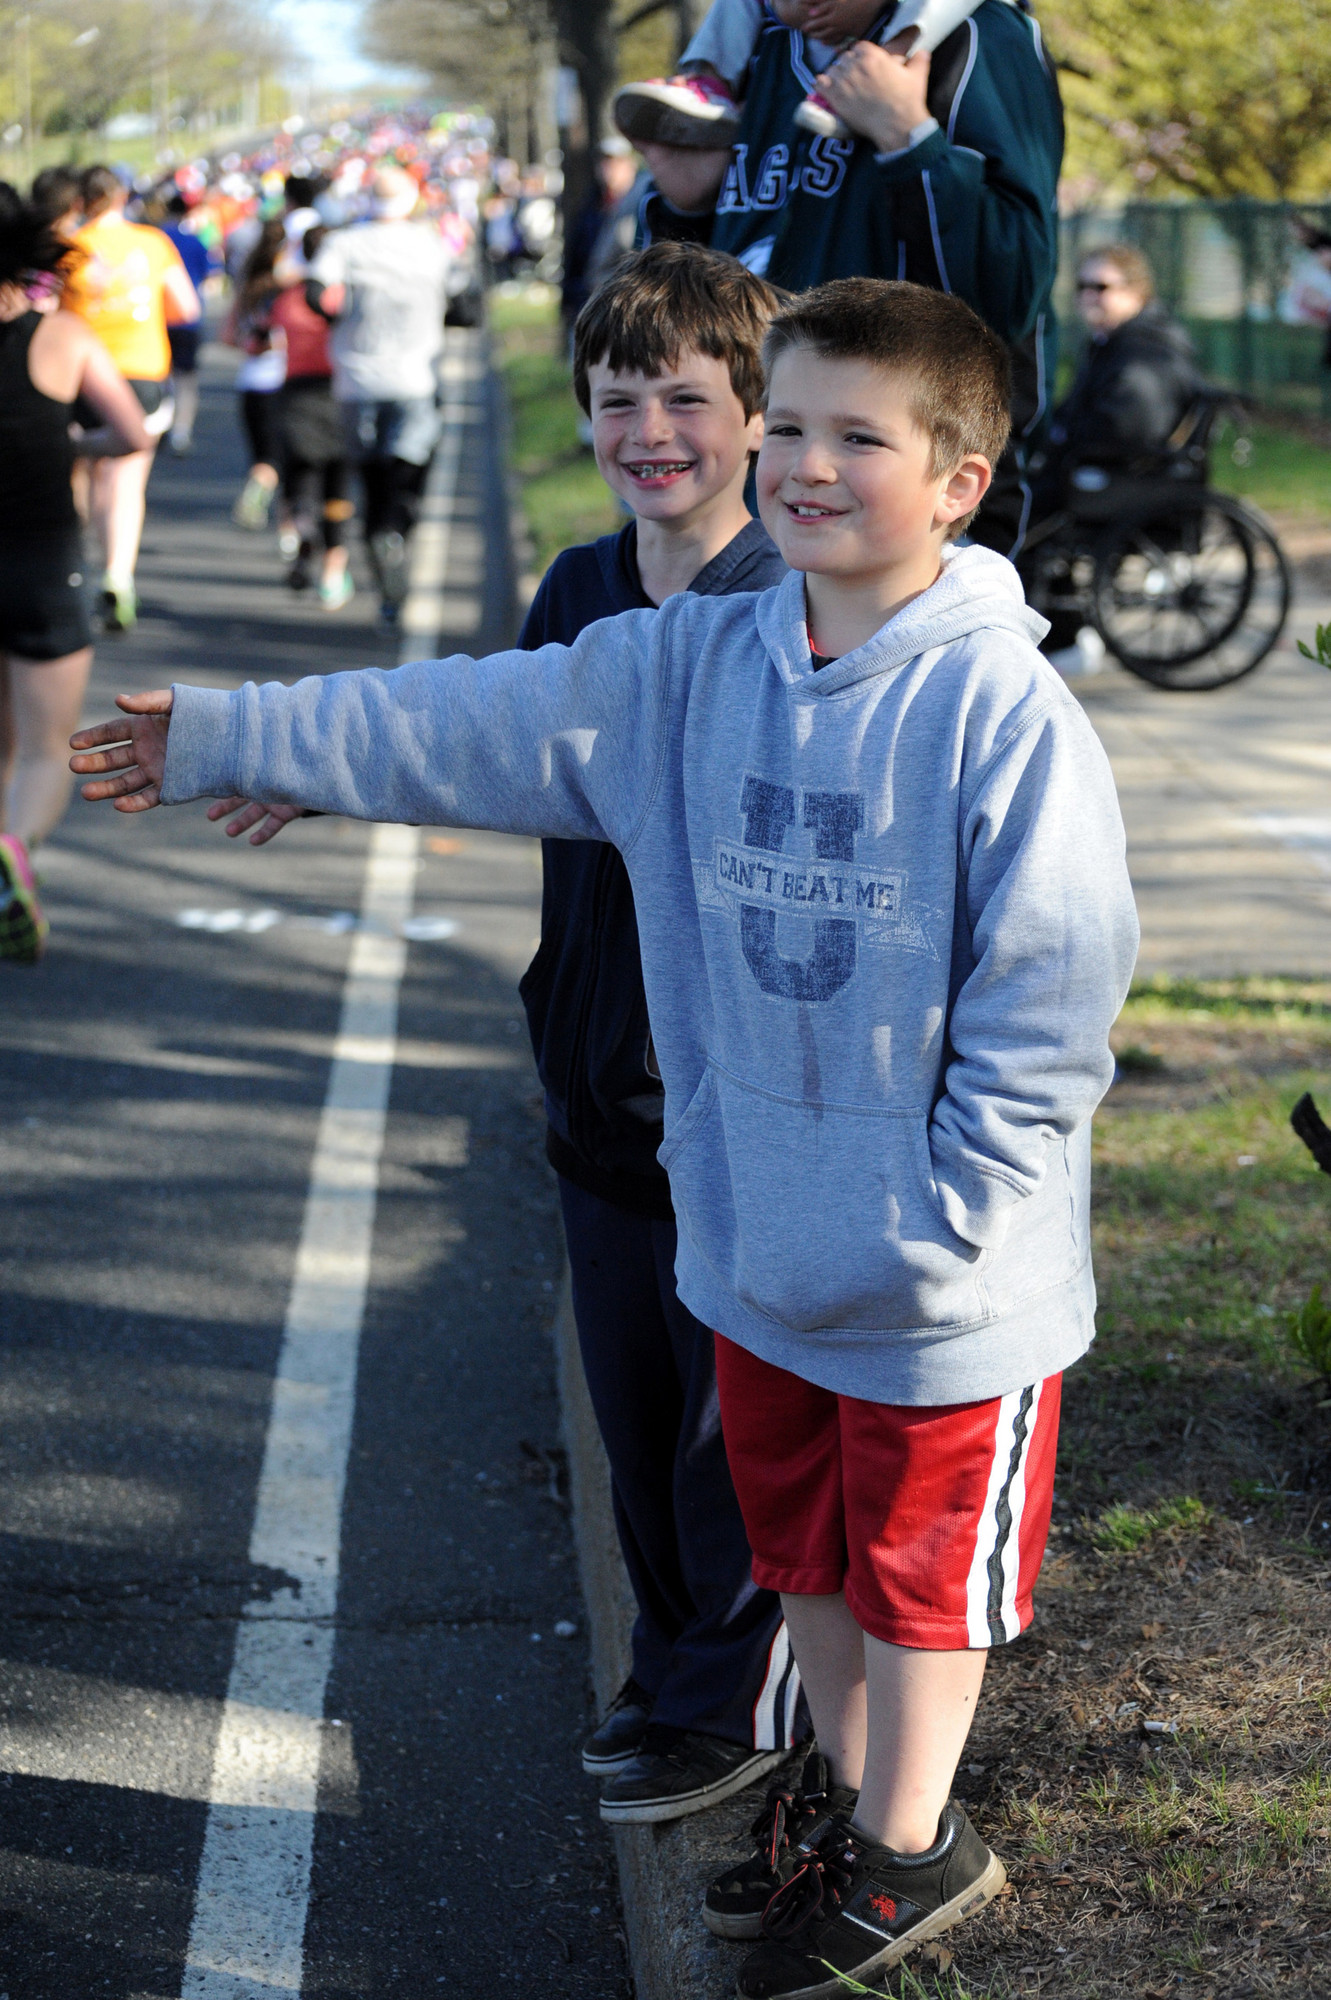 Sean Smith and Logan Schwartz, both 8, were two of 25,000 spectators who came out to support the runners.